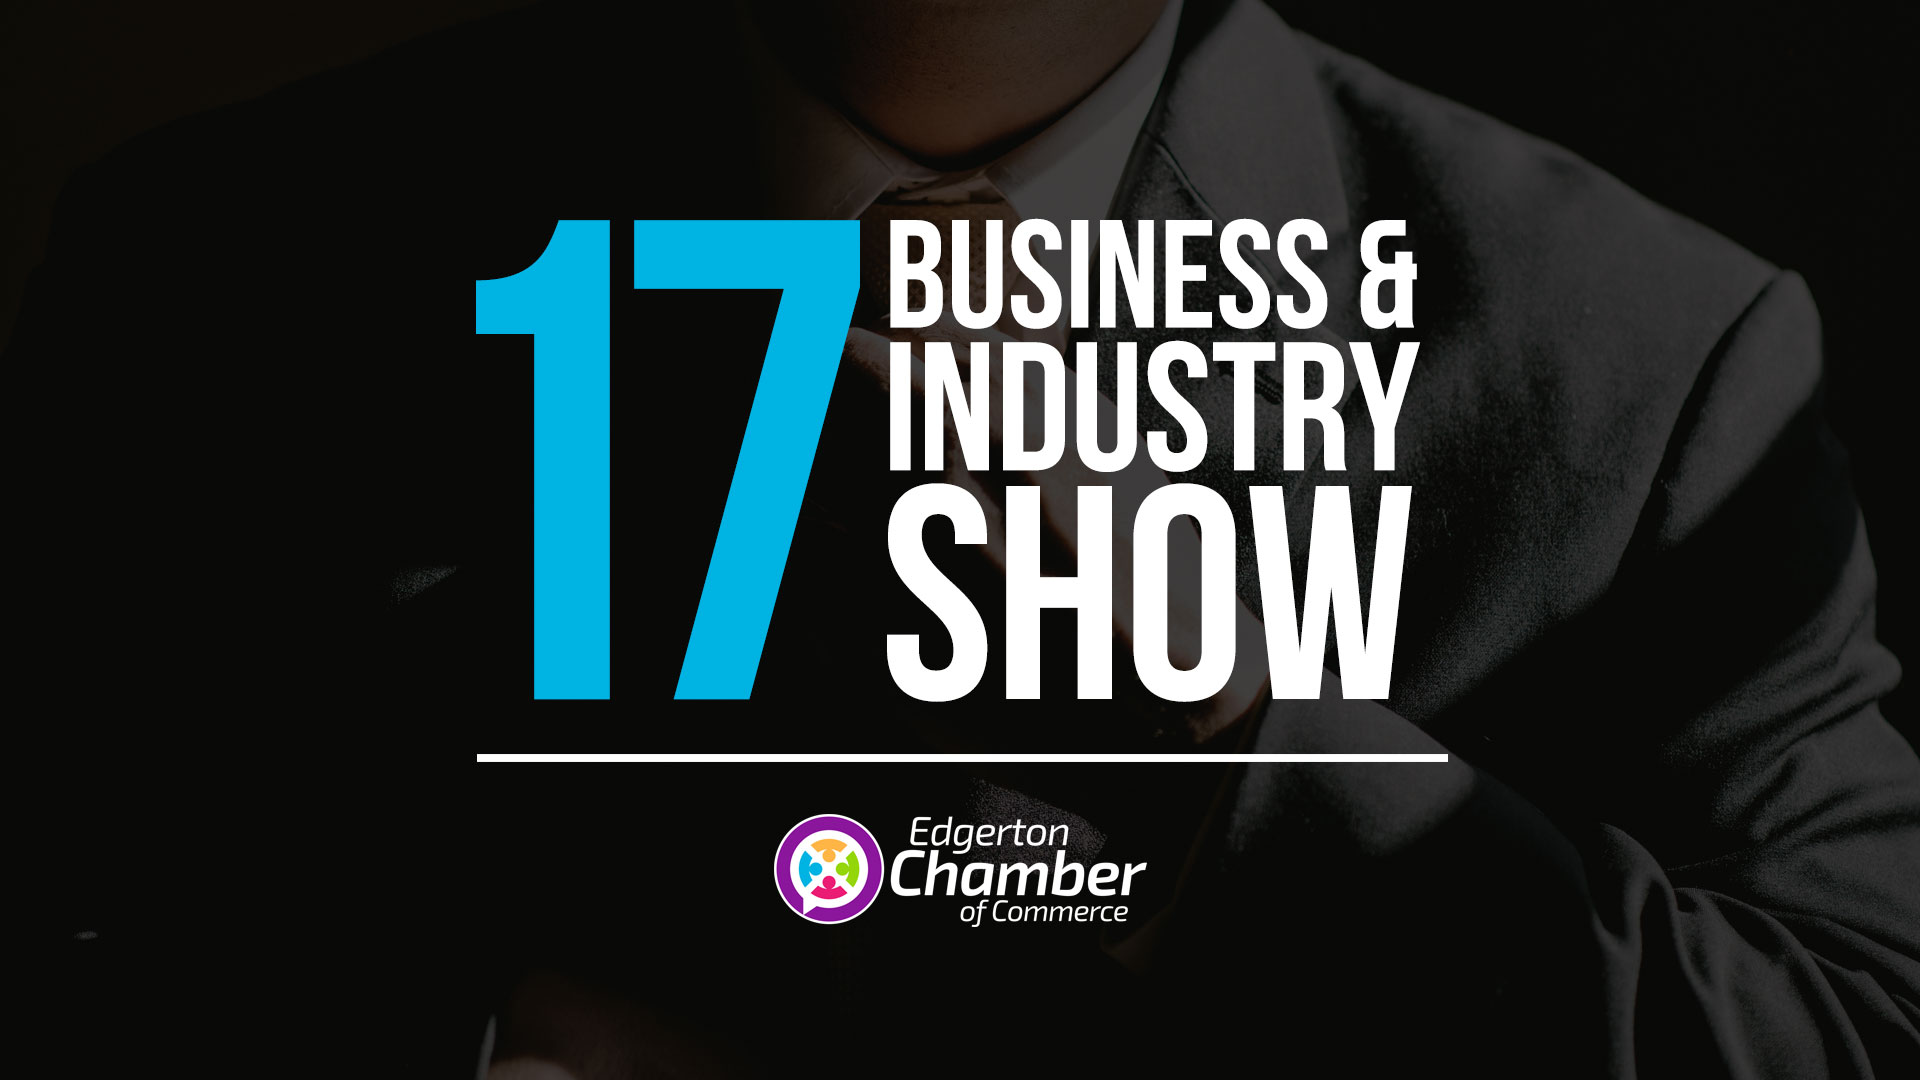 2017 Business & Industry Show | Edgerton Chamber of Commerce